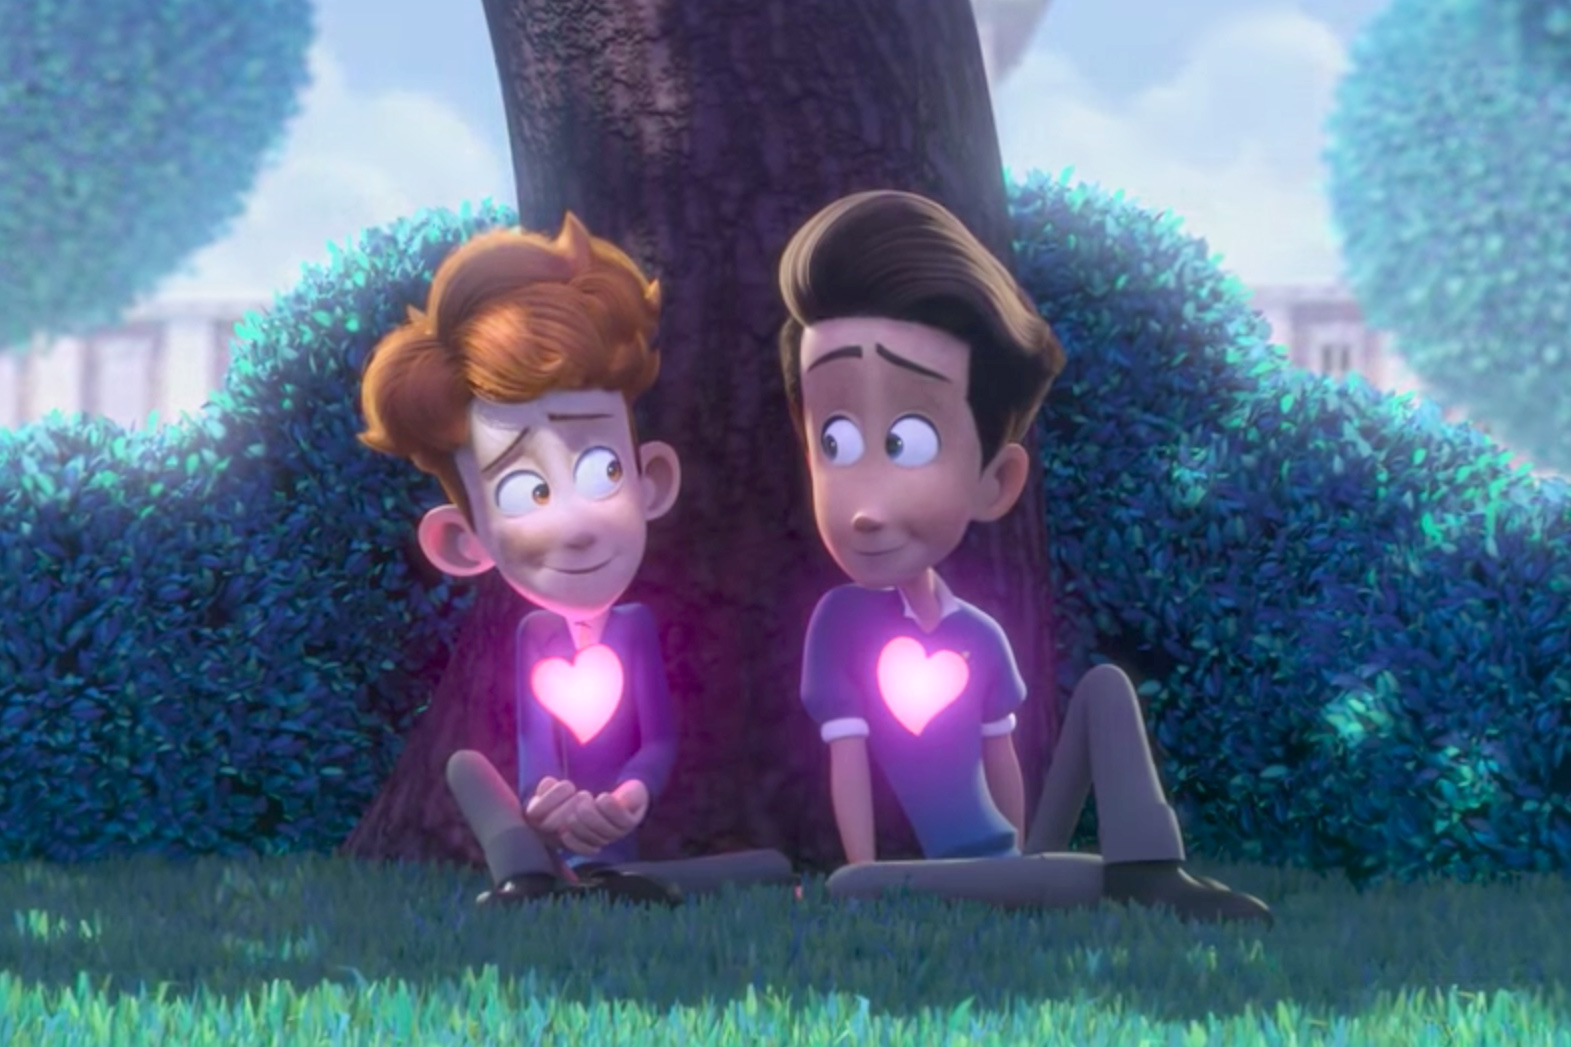 This Viral Animated Short About Two Boys Crushing Over Each Other Is So Sweet